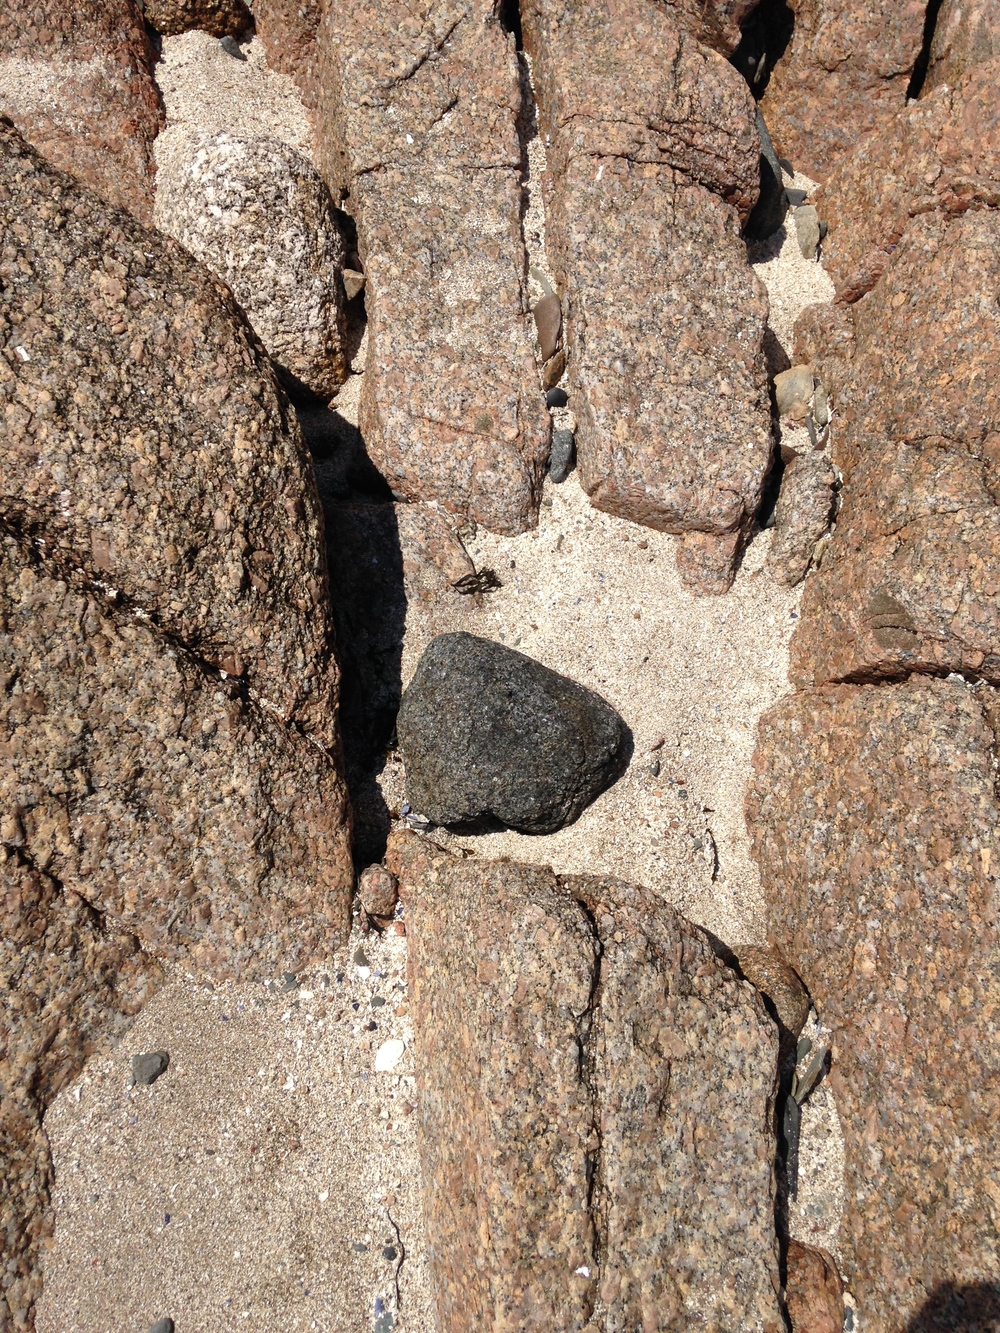 Rocks at Haystack.